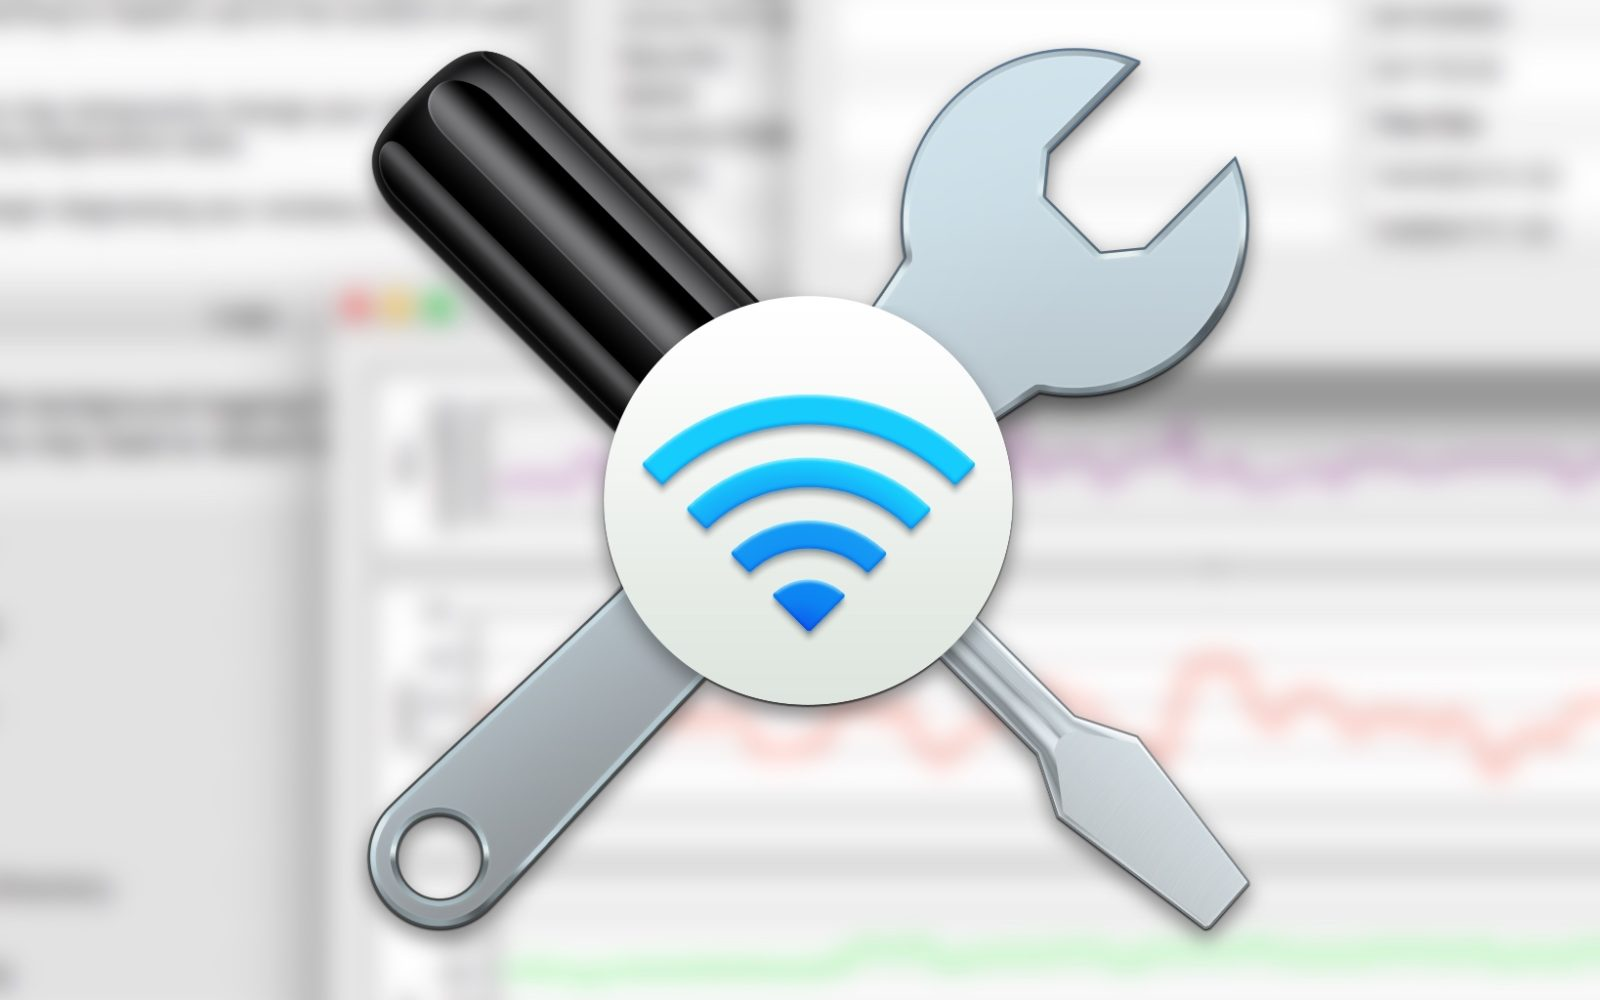 How-To: Understand the Wireless Diagnostics app on your Mac